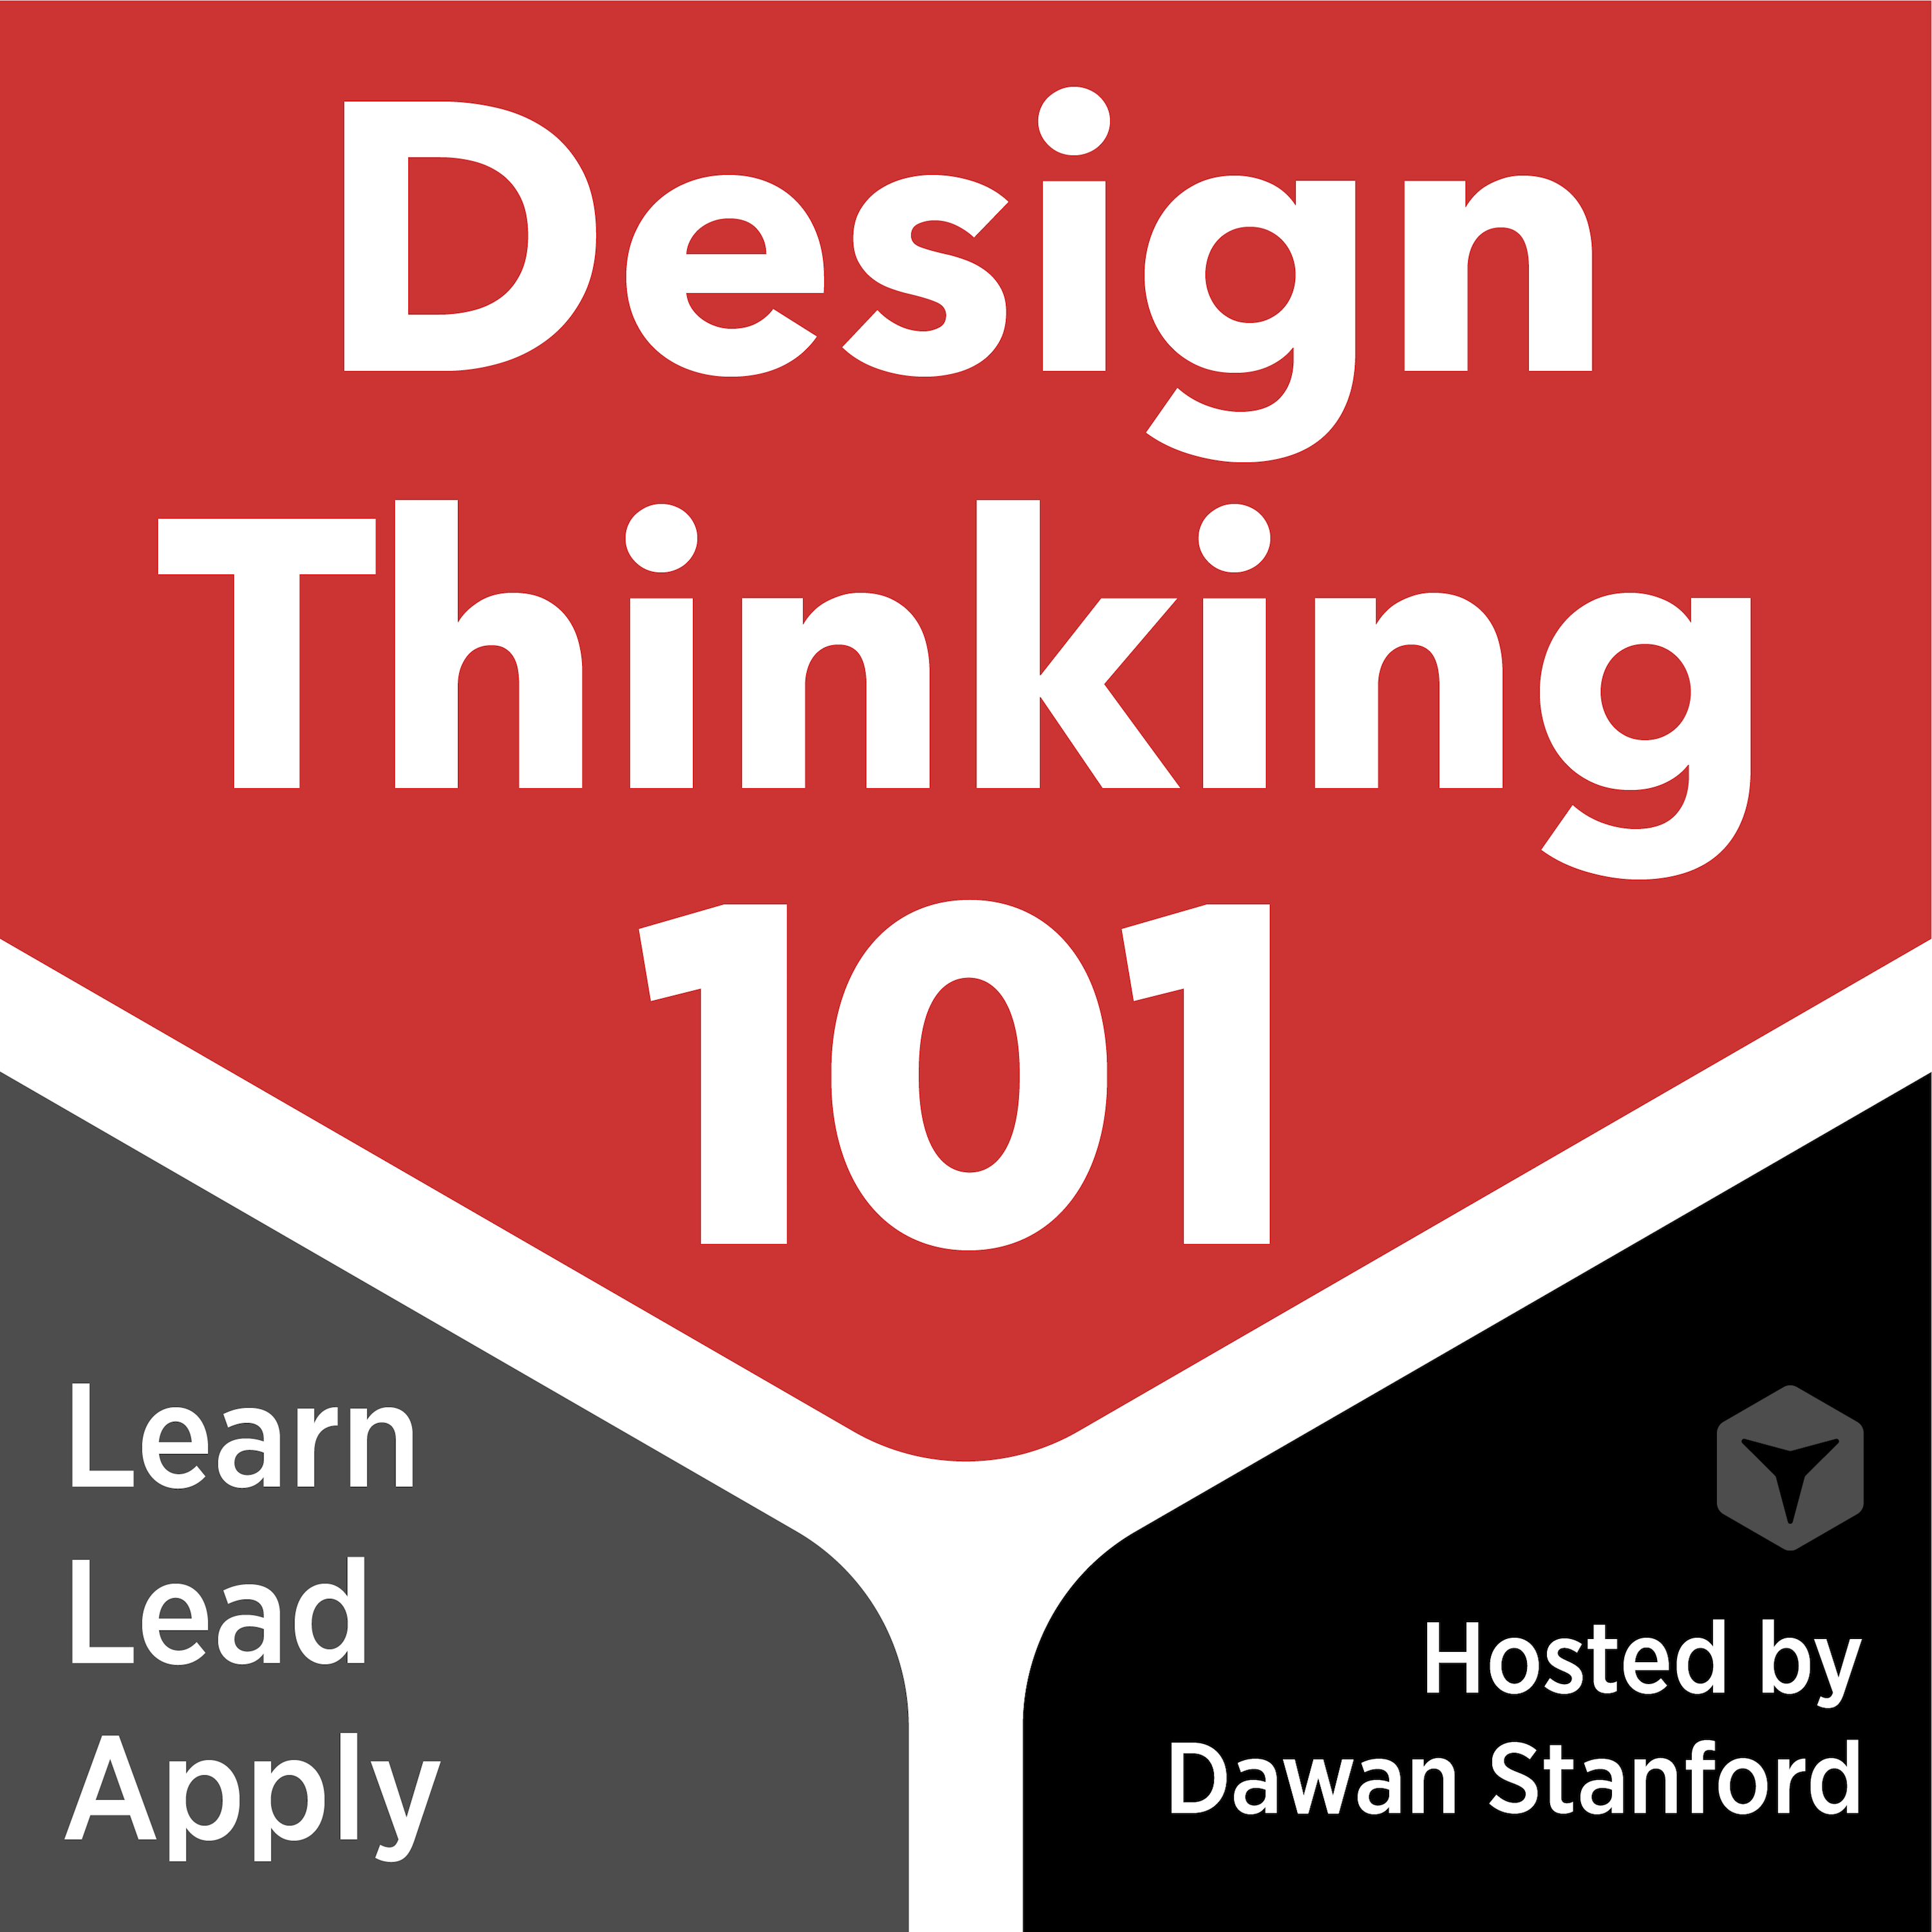 Design Thinking 101 Podcast Logo. Design Thinking 101 is printed large in the center. The words learn, lead and apply appear at the lower left. Hosted by Dawan Stanford appears at the lower right.